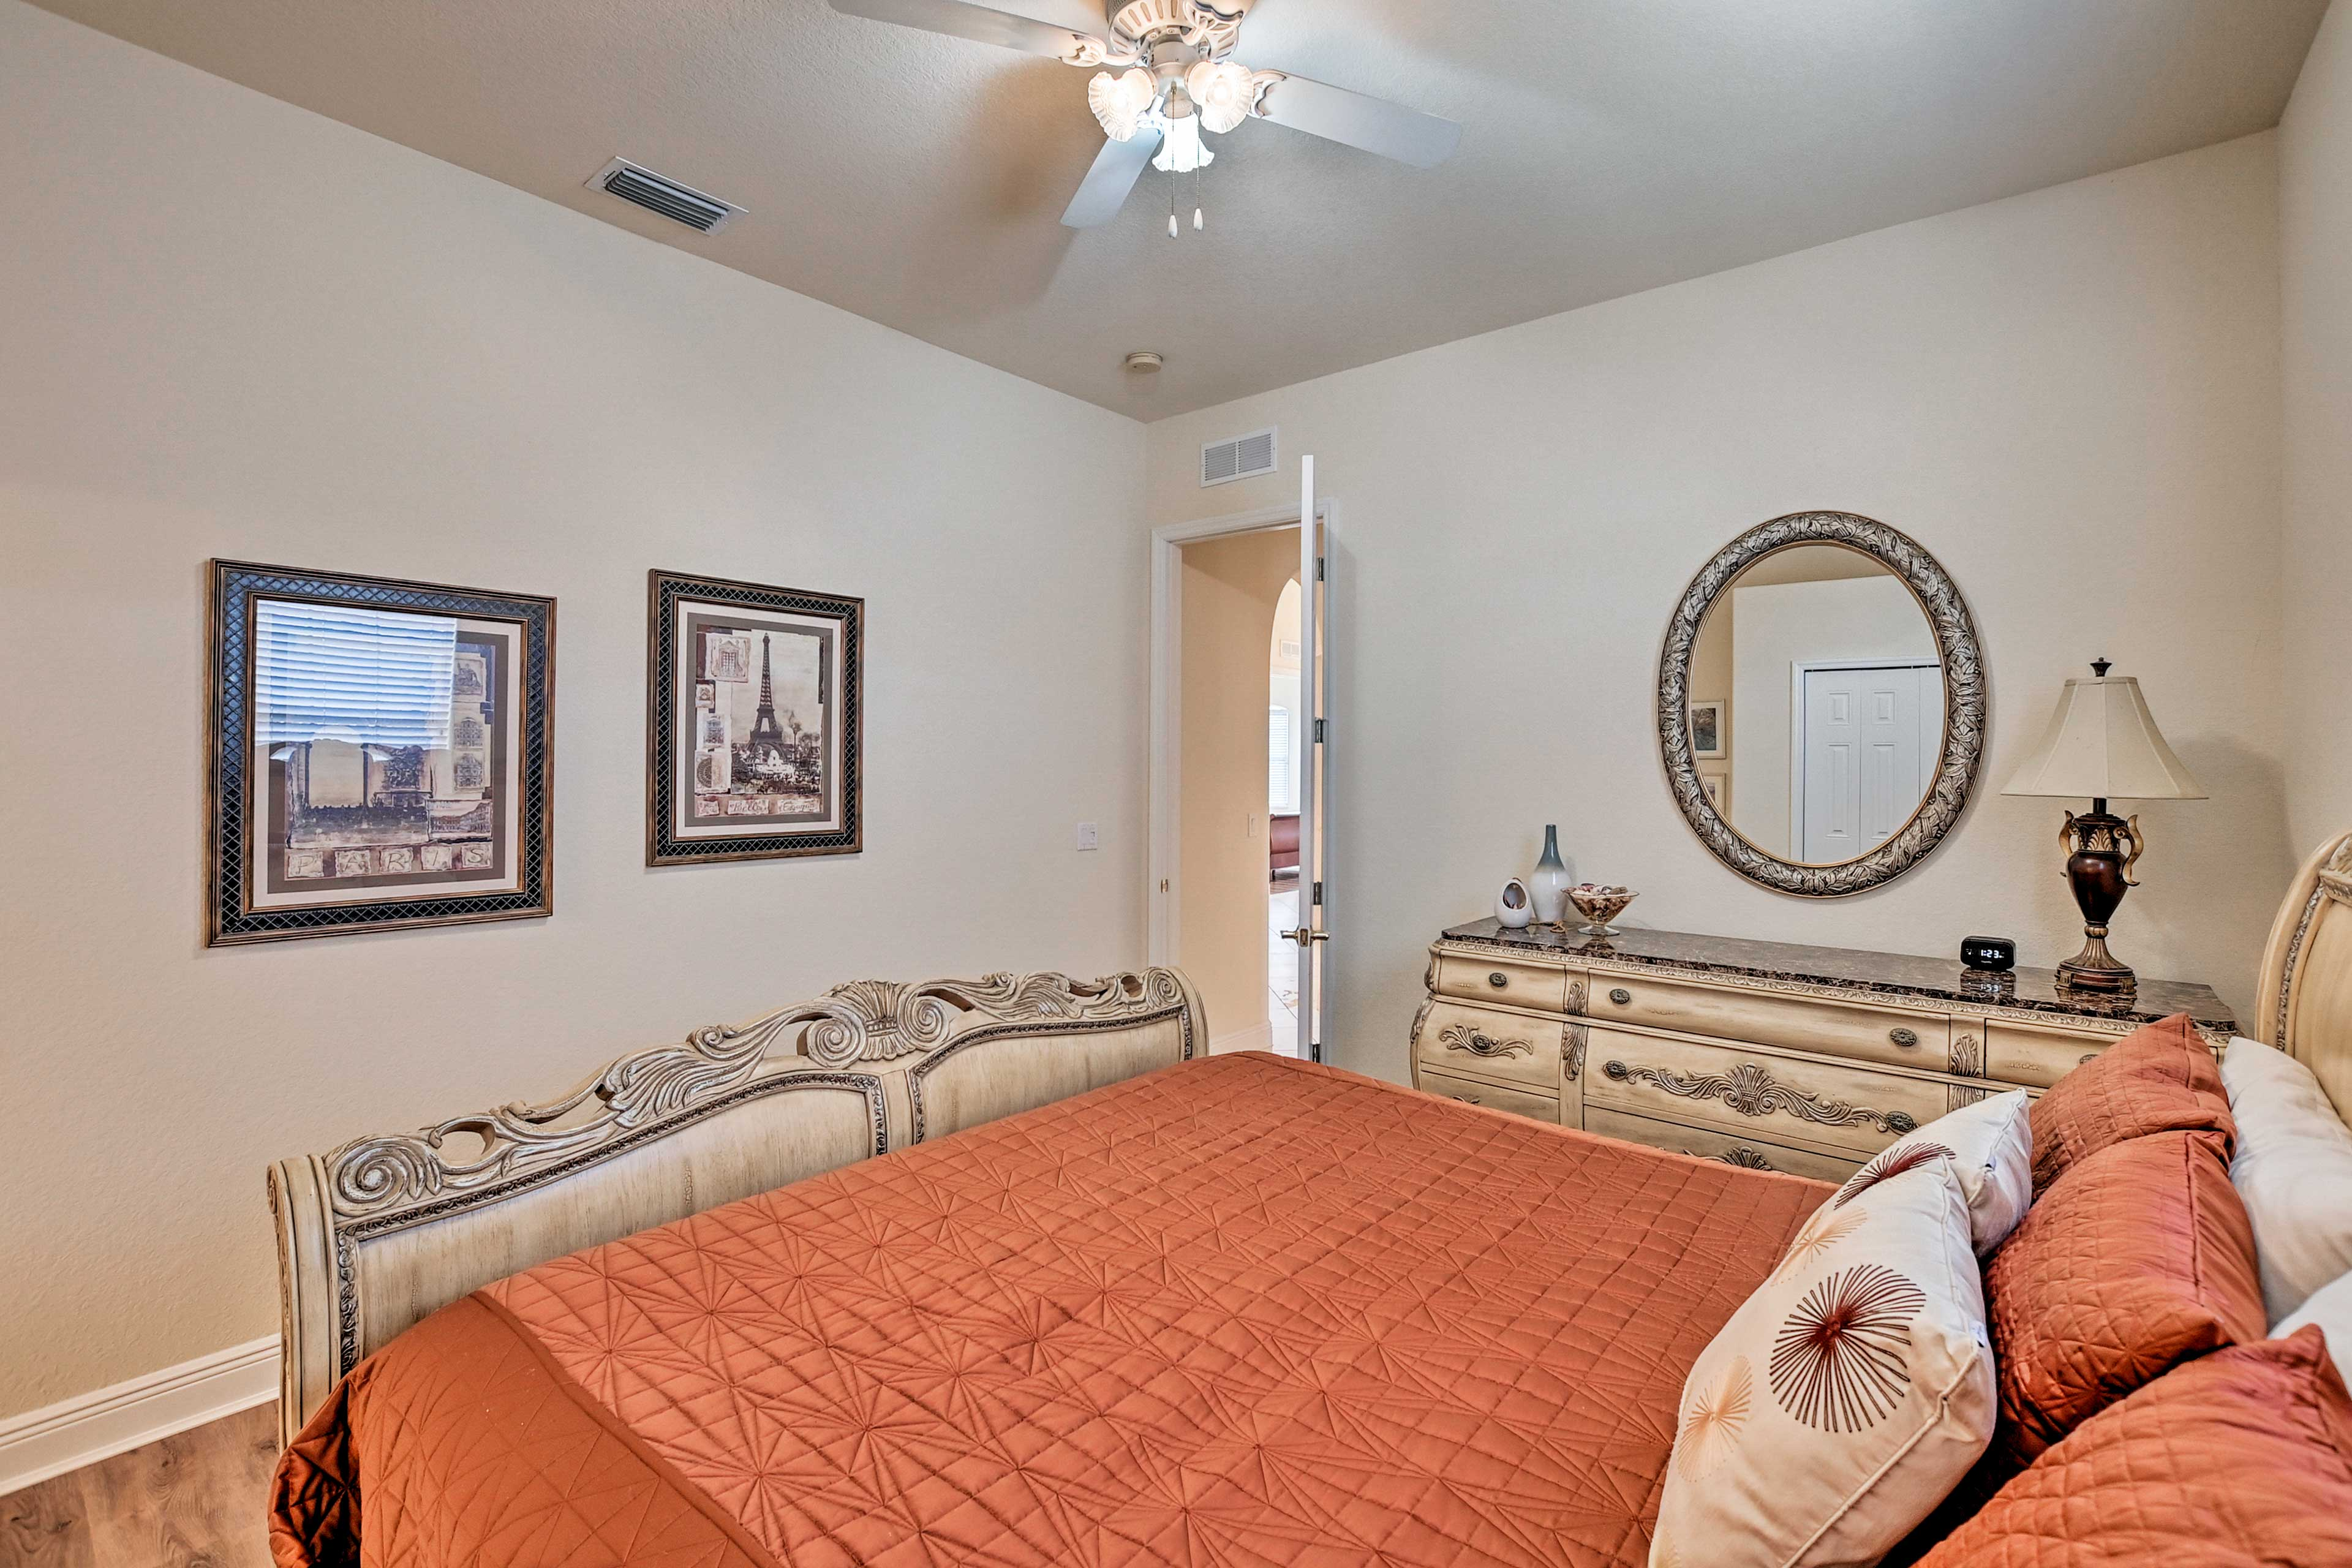 Rest easily in the comfort of this bedroom.